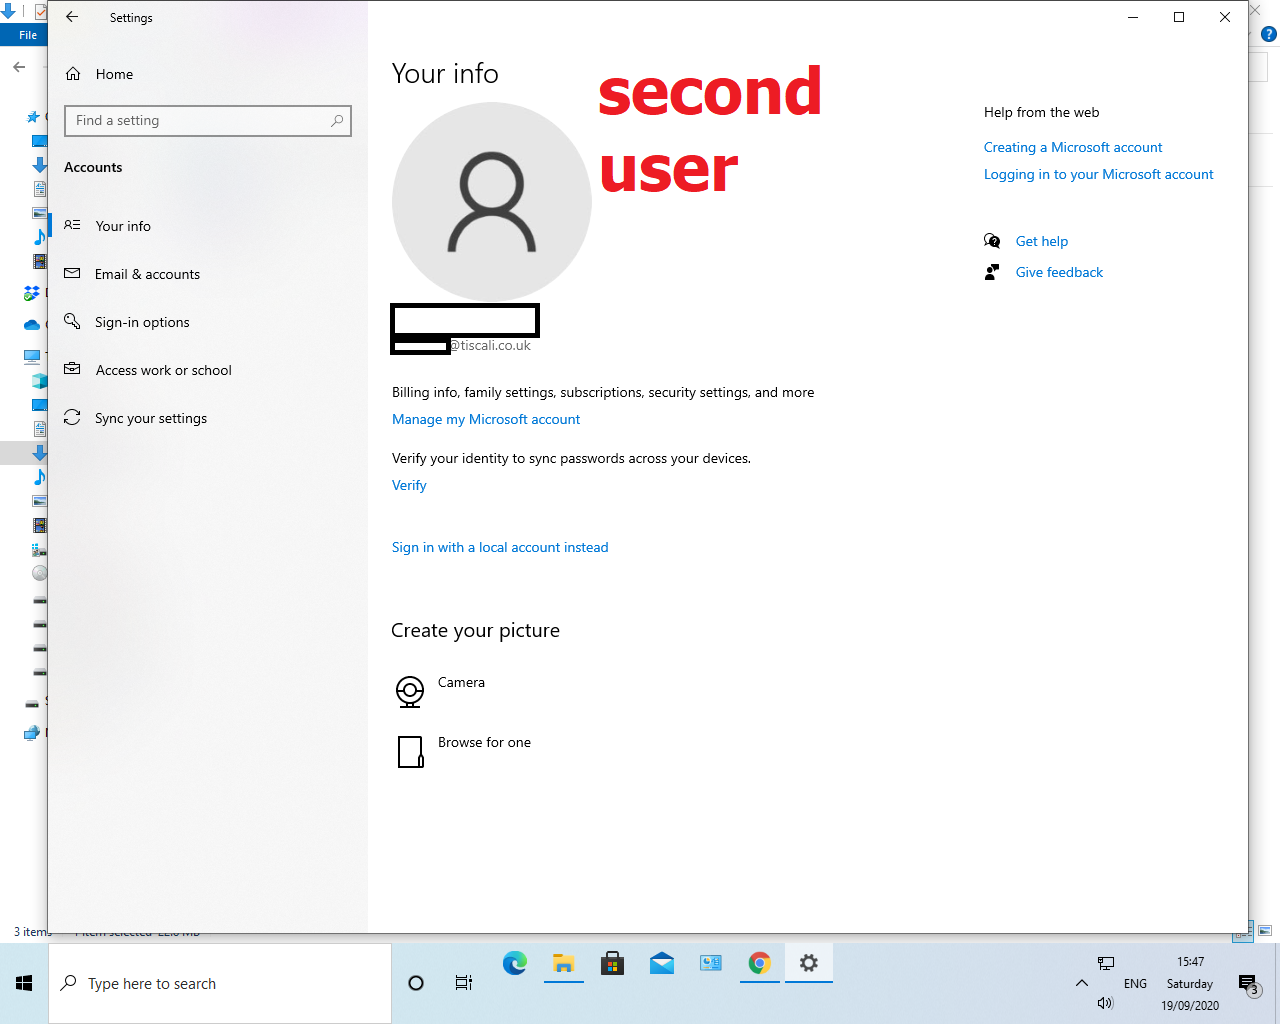 Second User account keeps asking PIN to install apps